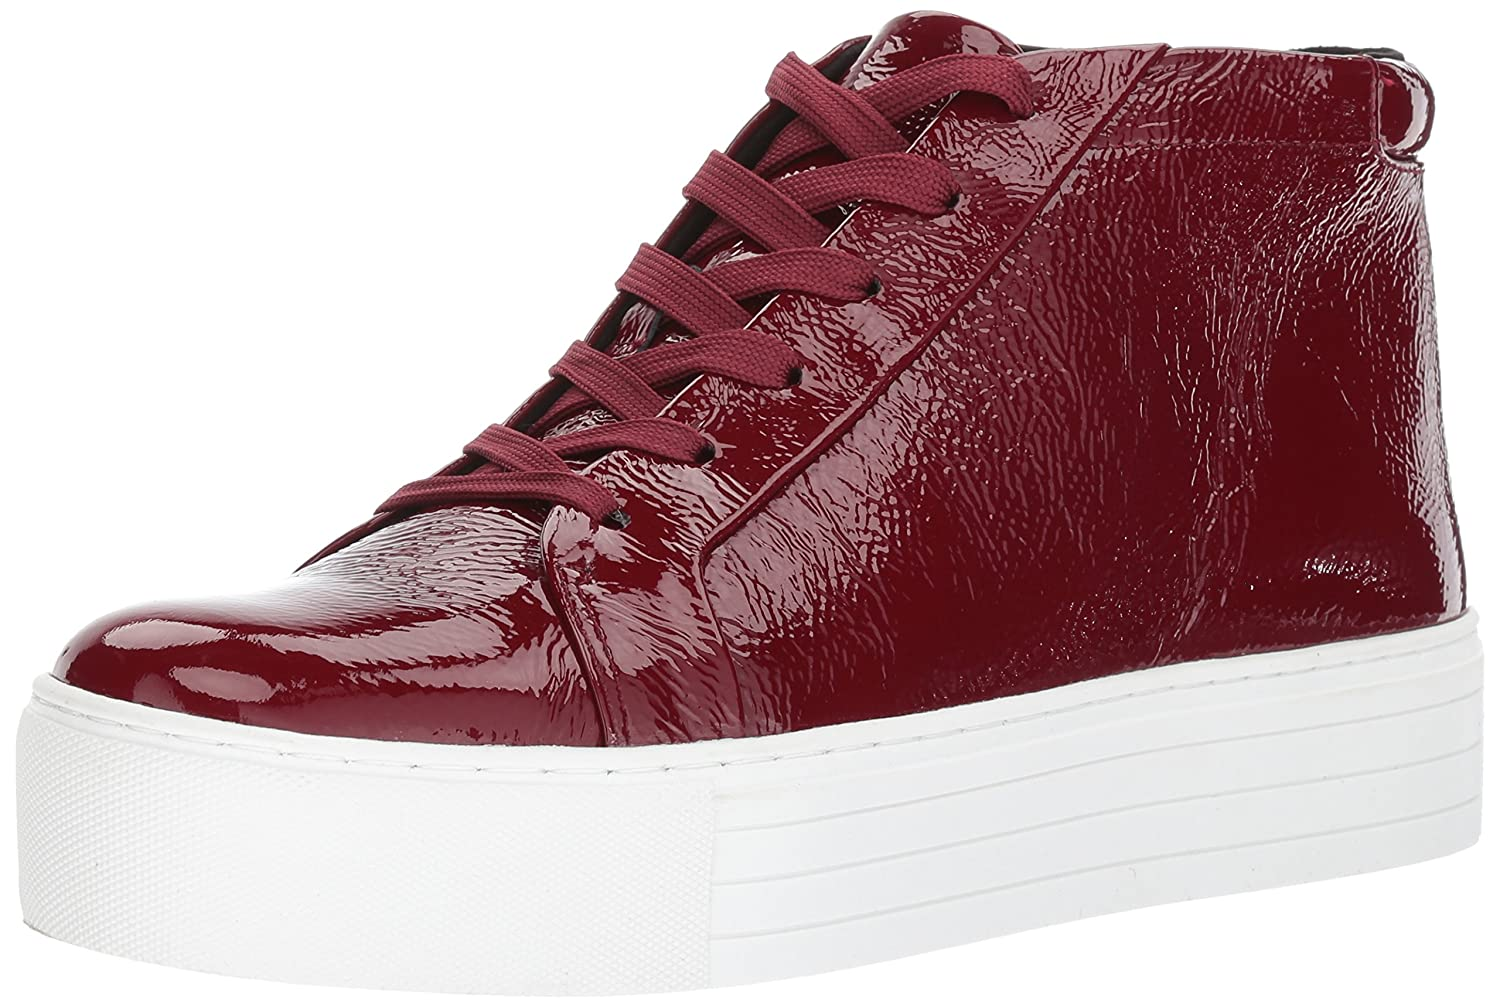 Kenneth Cole New York Women's Janette Platform High Top Lace up Platform Janette Patent Fashion Sneaker B071XNT527 9.5 B(M) US|Wine 2ae5ff